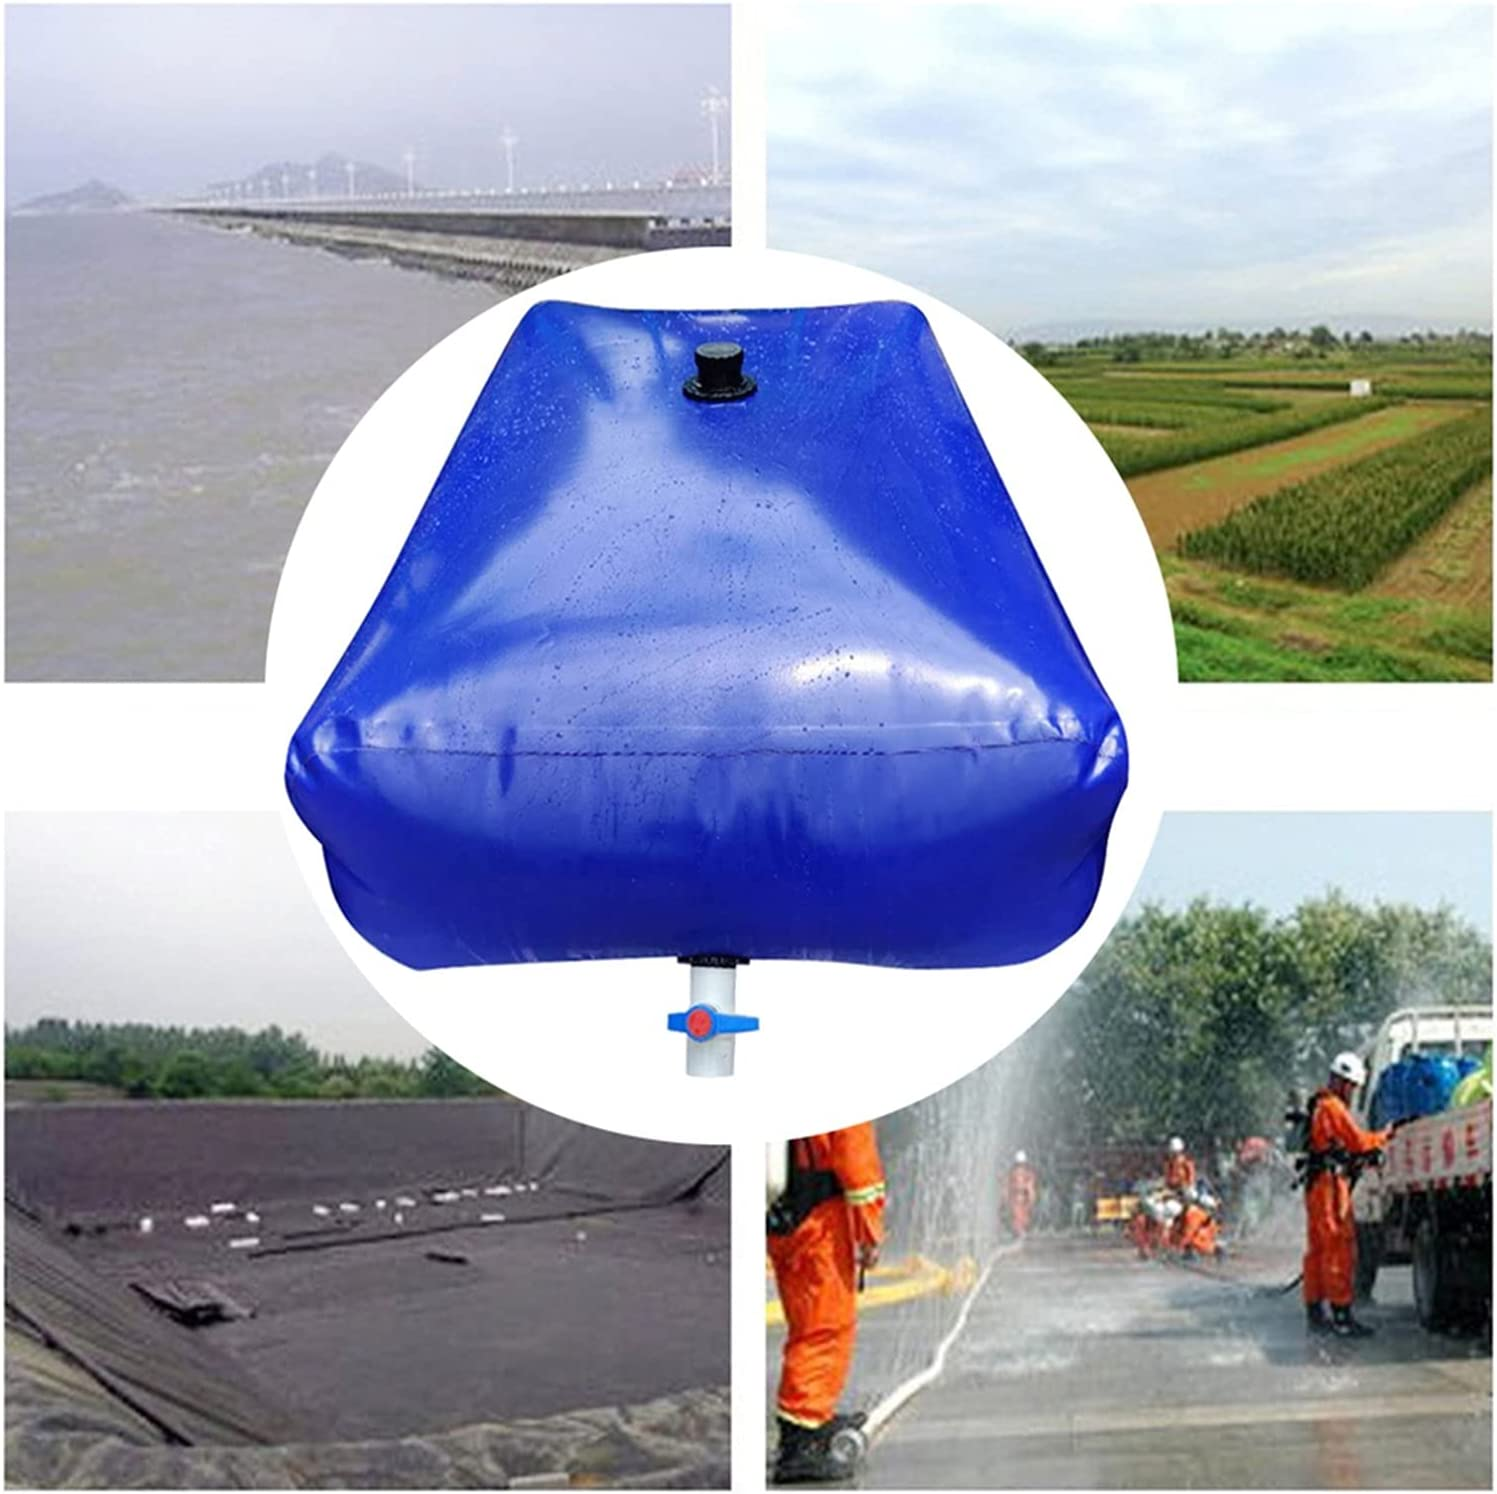 Water Low price Storage Tank Soft PVC Large Foldable Carrier Capaci Max 61% OFF